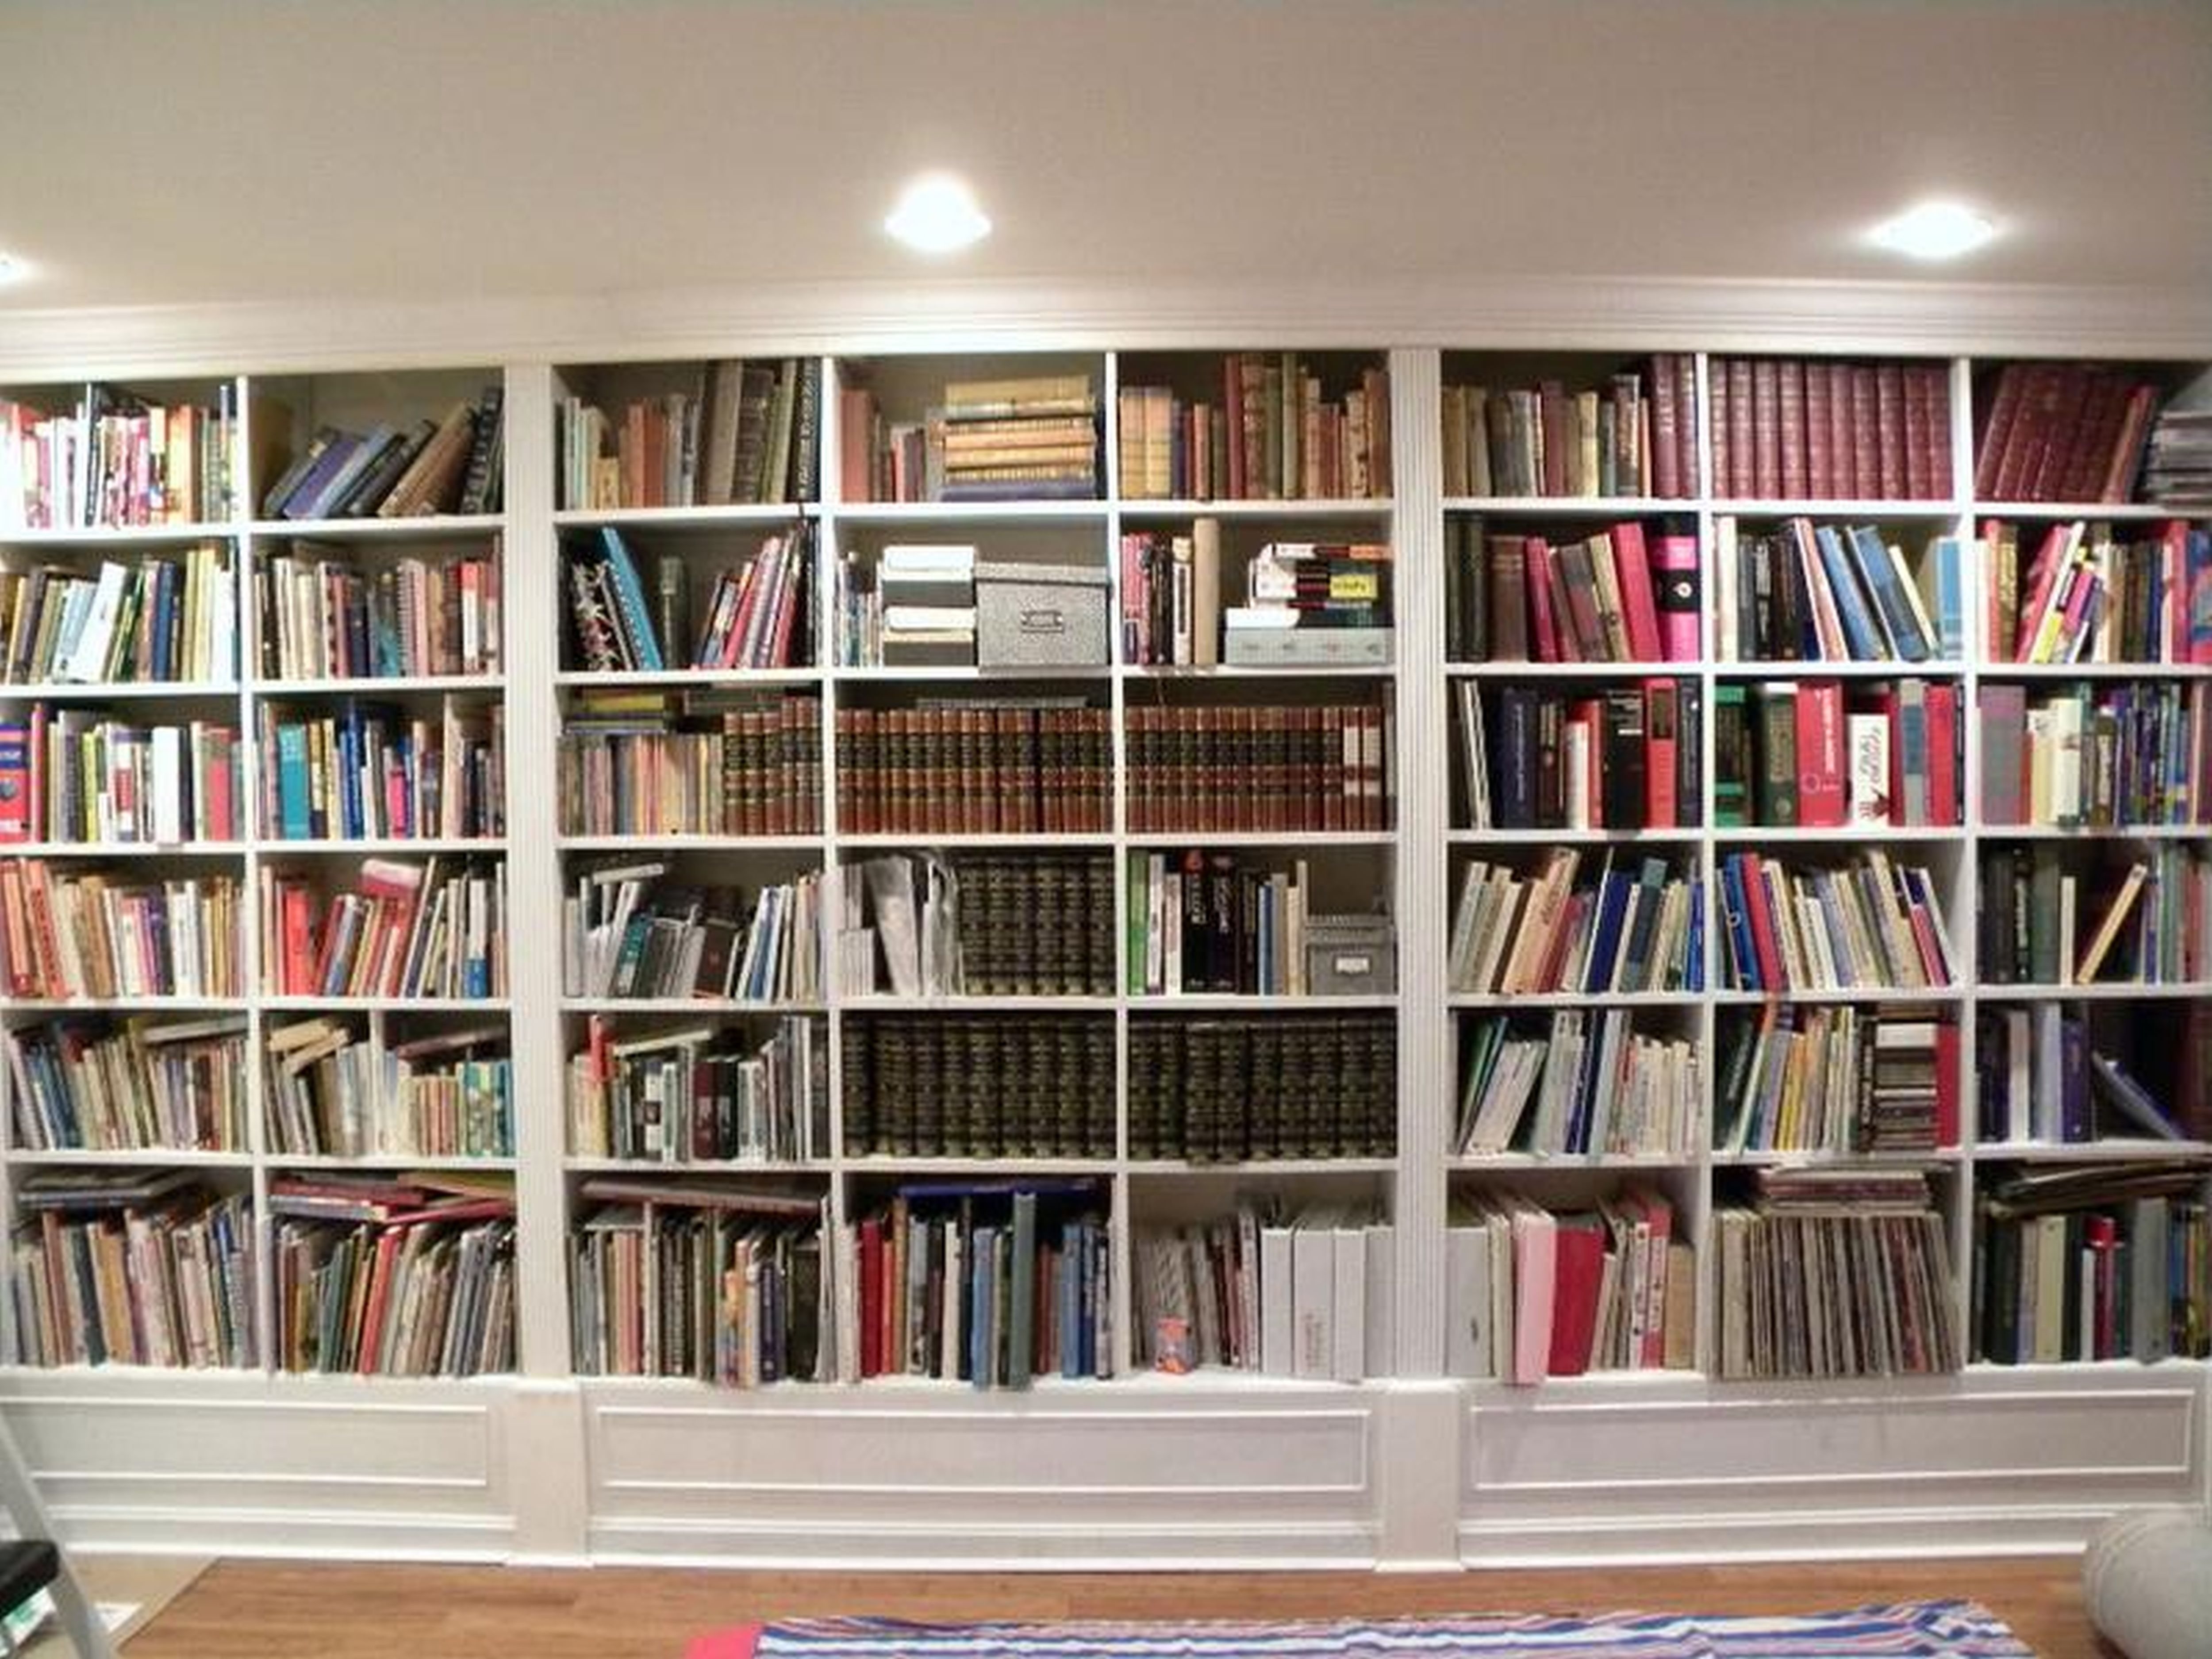 17 Best Images About Bookshelves On Pinterest Intended For Full Wall Bookcases (View 3 of 15)